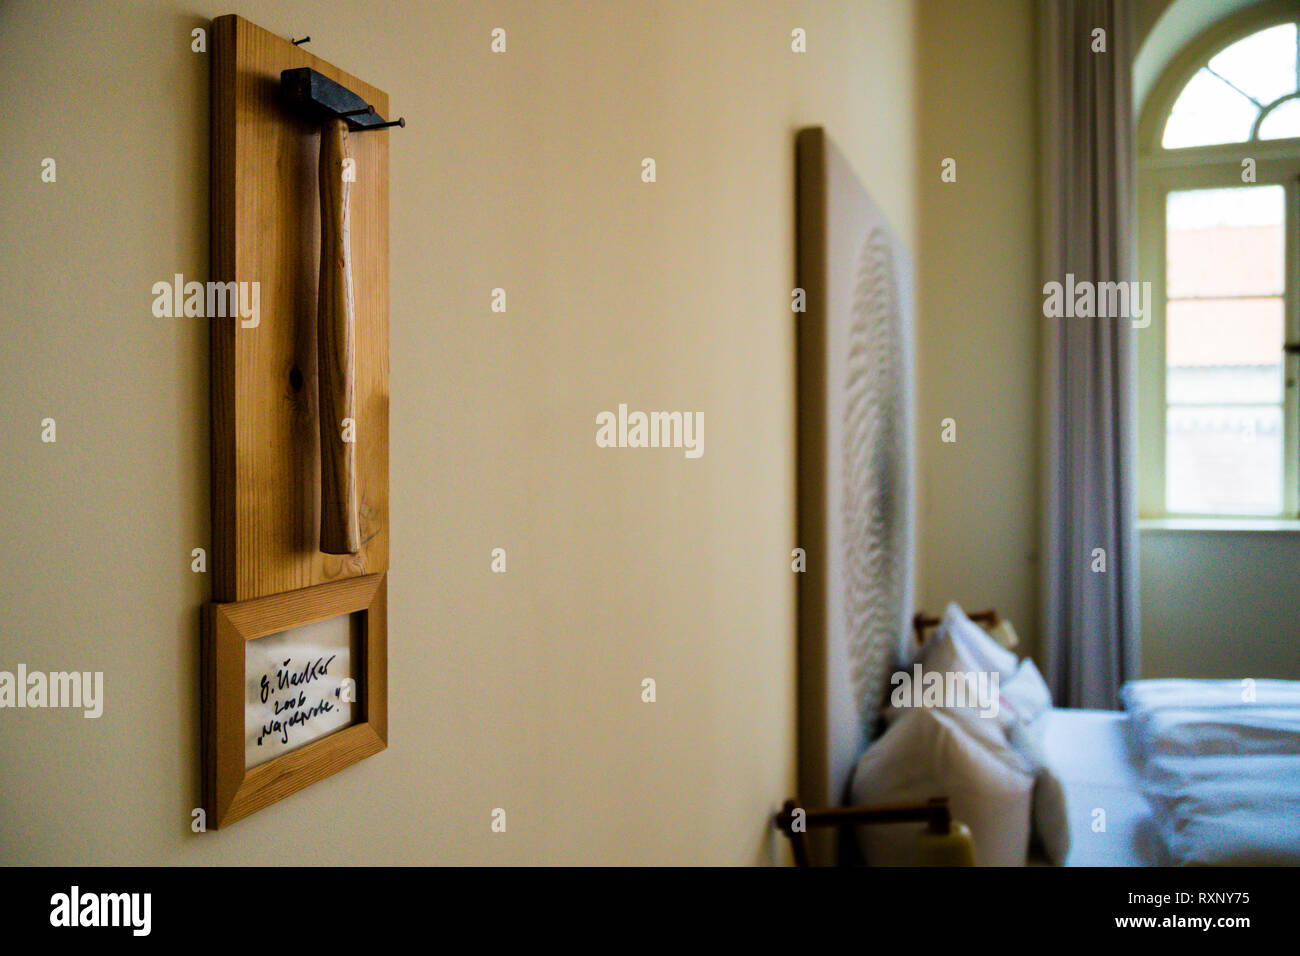 Hotel Kavaliershaus in Fincken, Germany Stock Photo